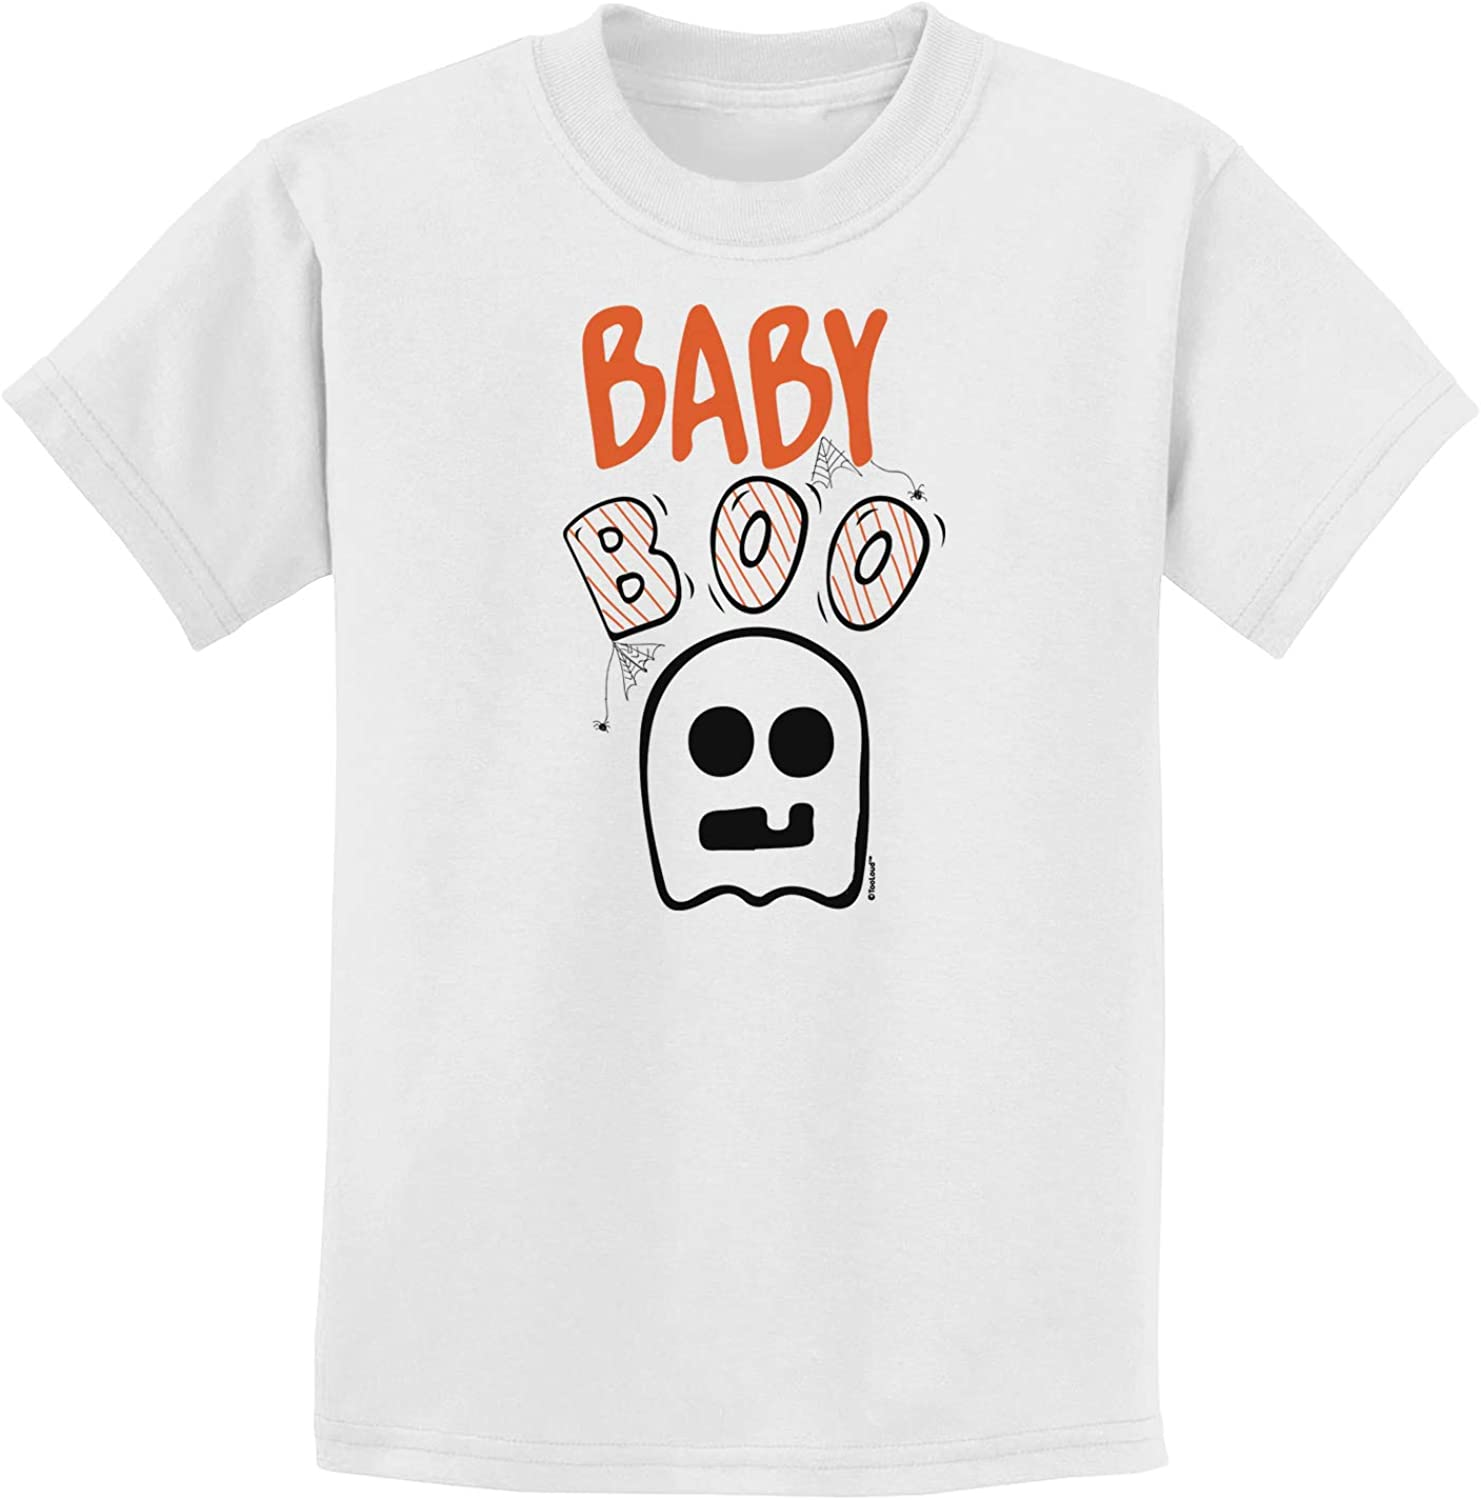 TOOLOUD Baby Boo Ghostie Childrens T-Shirt